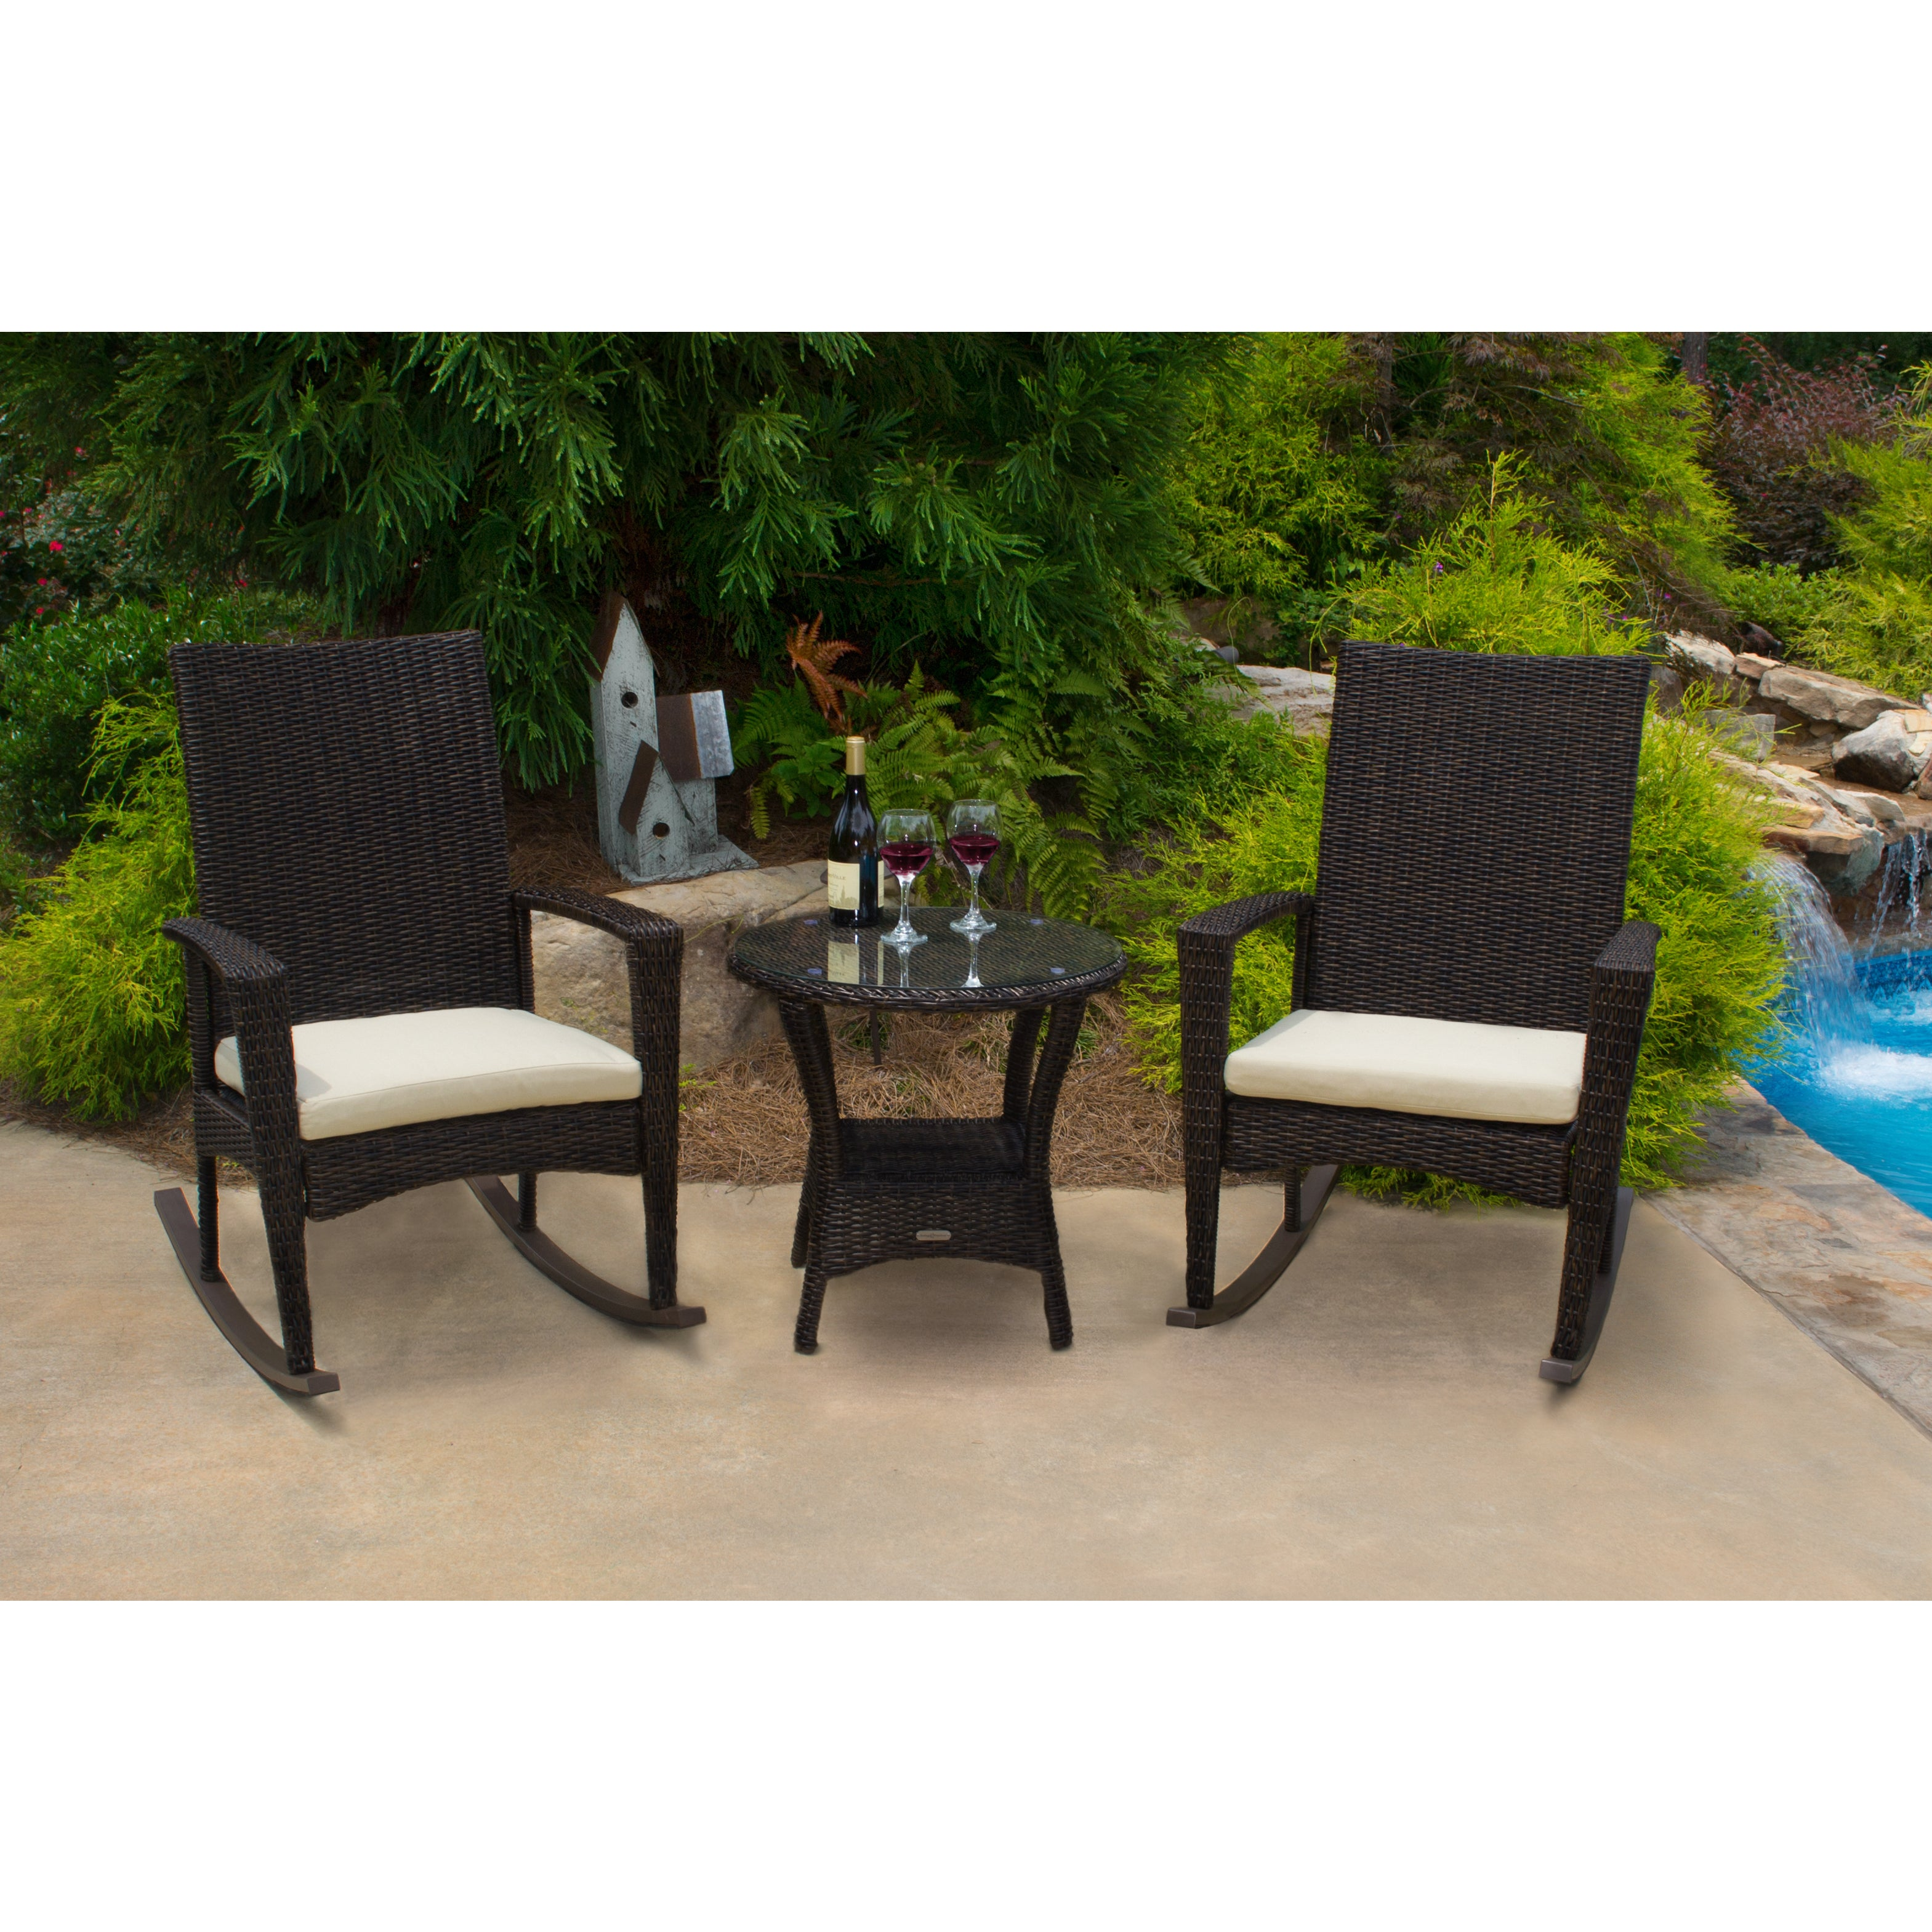 Shop Tortuga Outdoor Bayview Pecan Rocking Chair 3 Piece